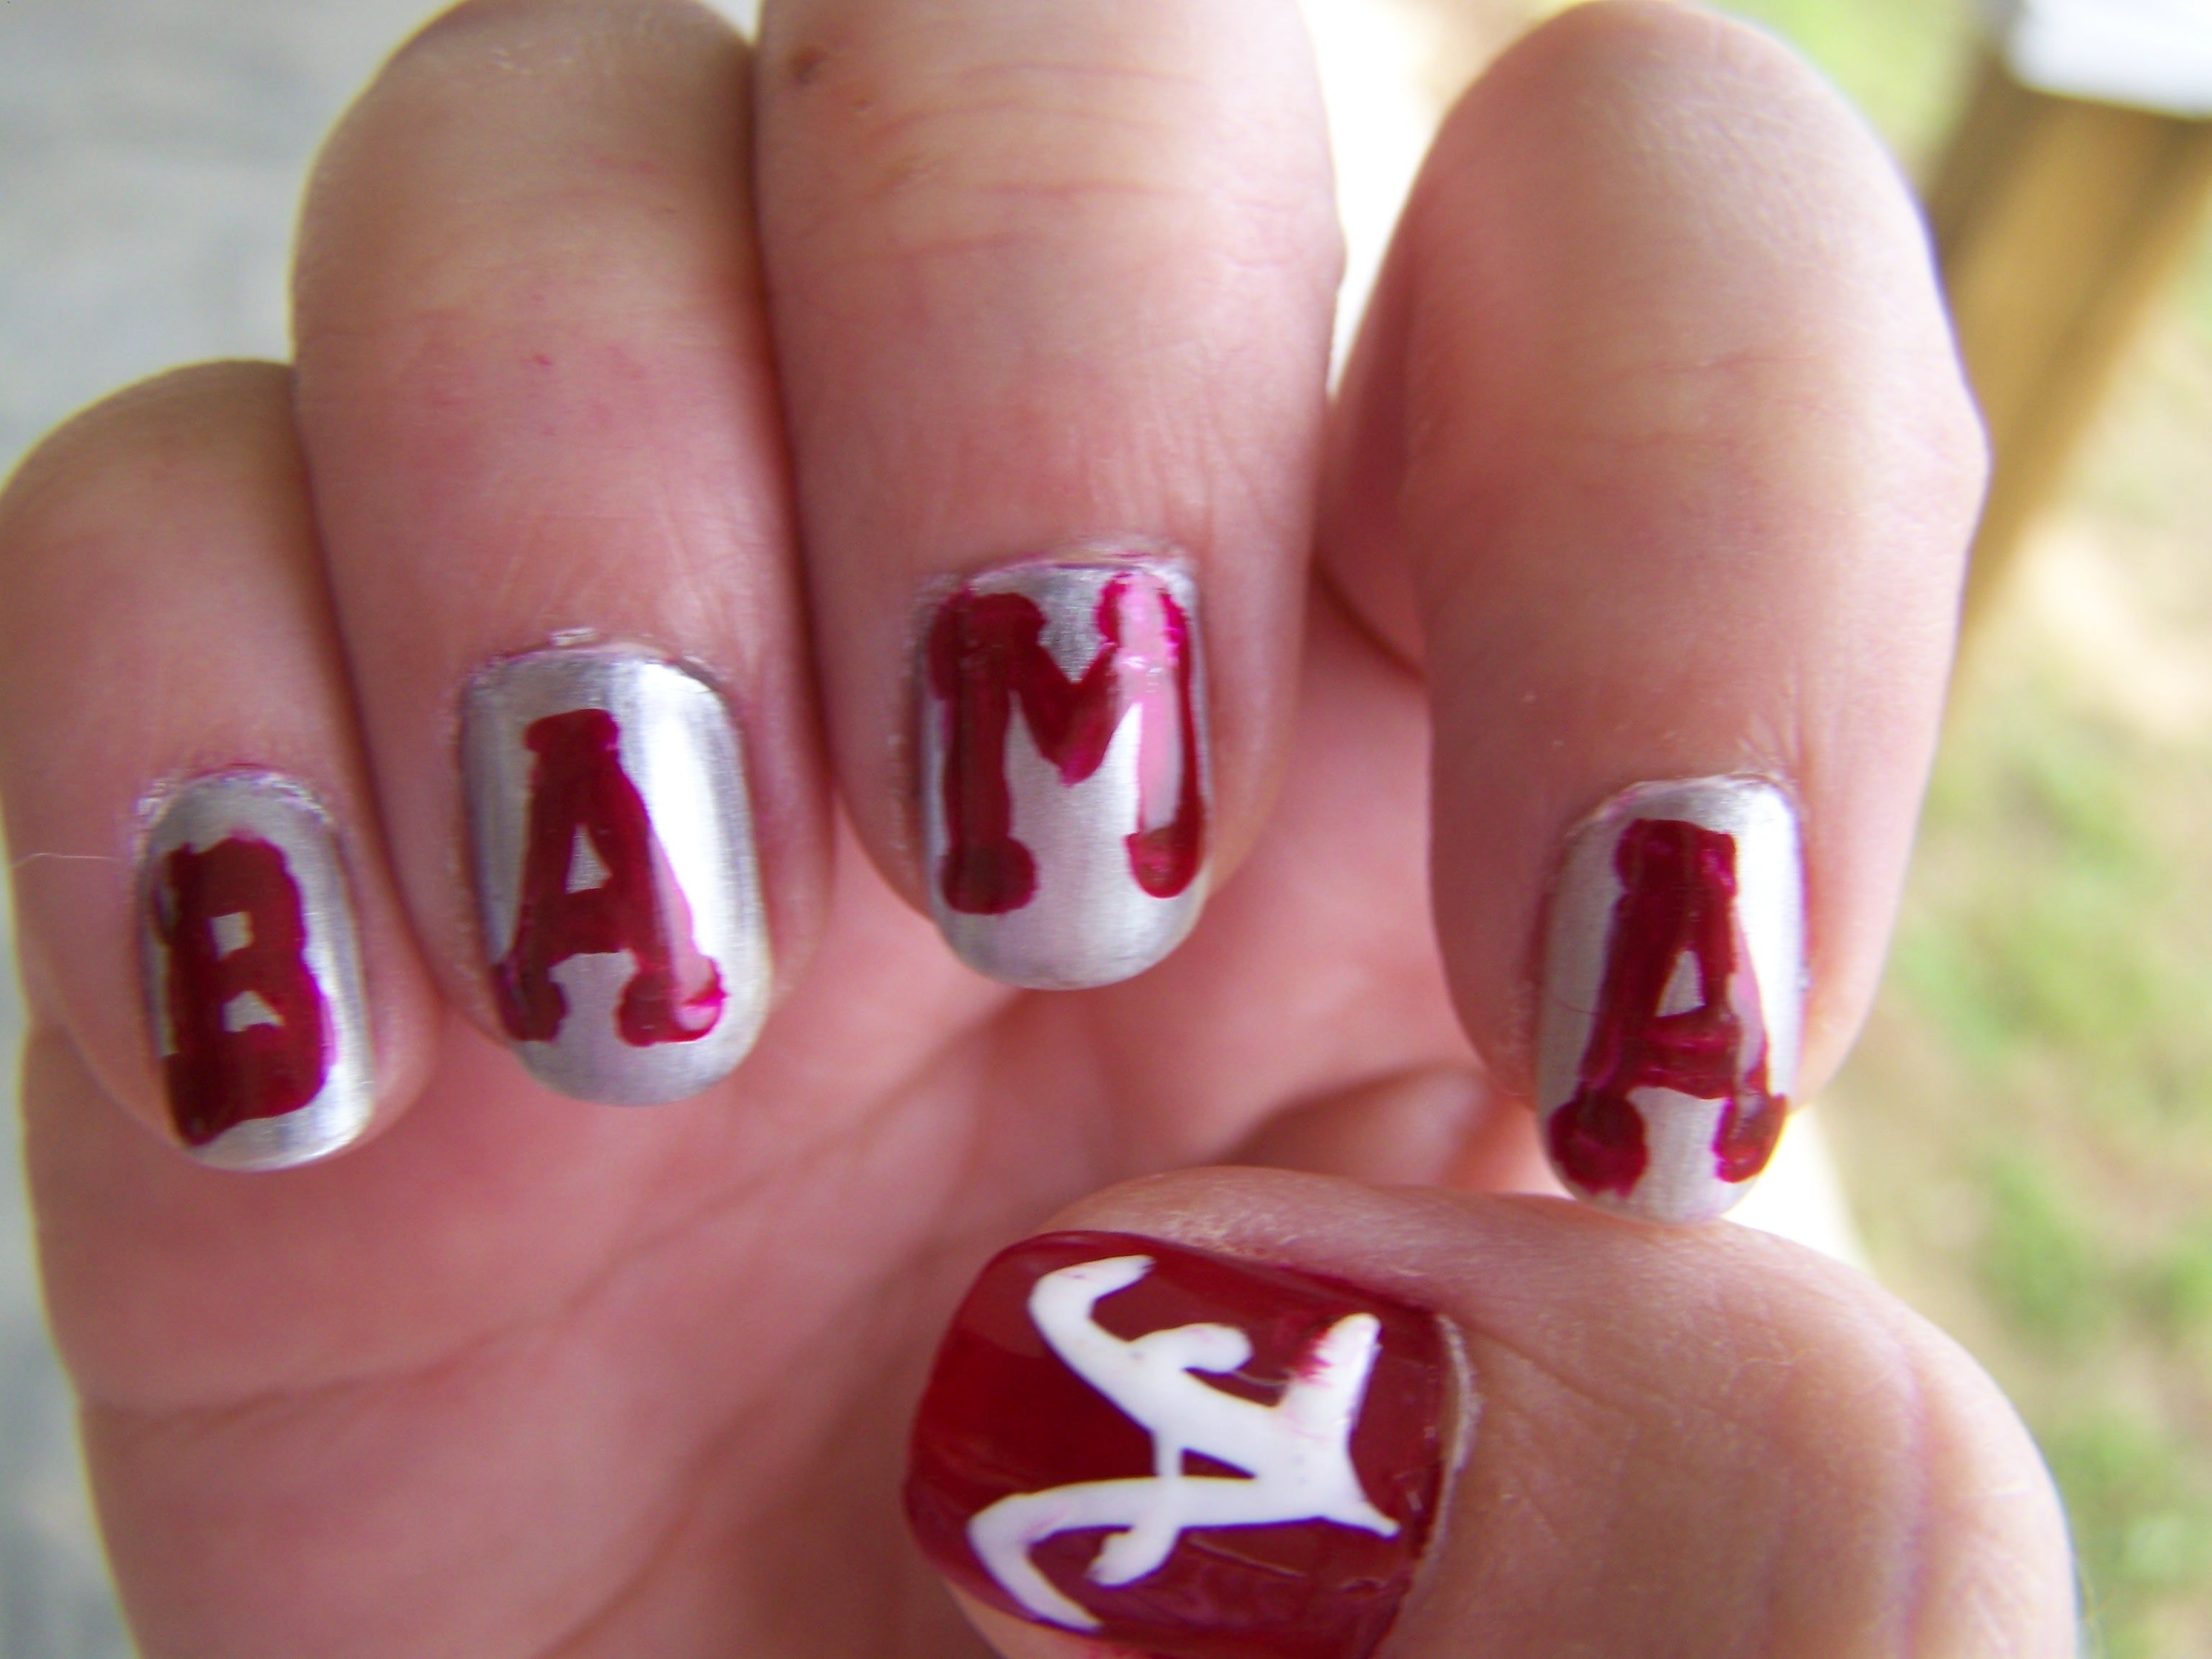 bama nails 2 joy of